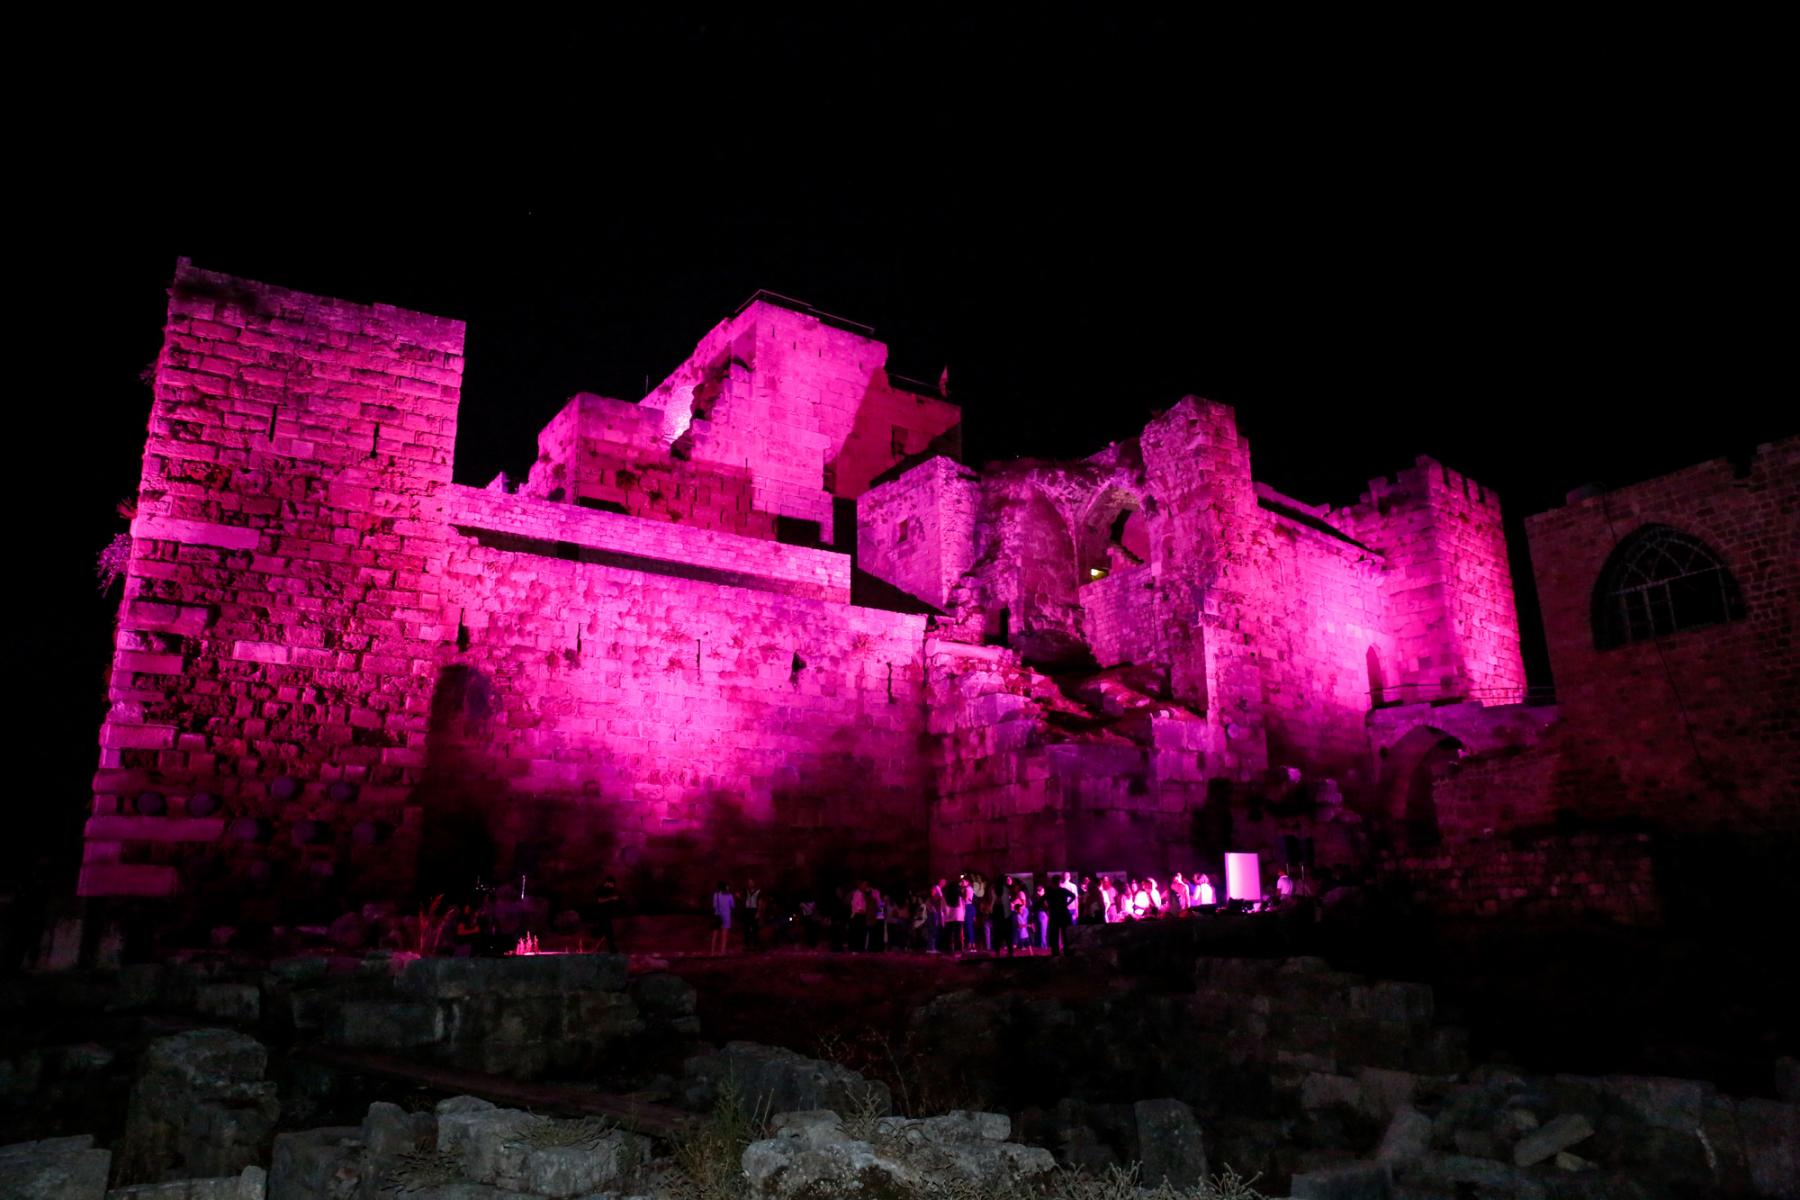 Byblos-Jbeil Castle at night, illuminated with pink lights